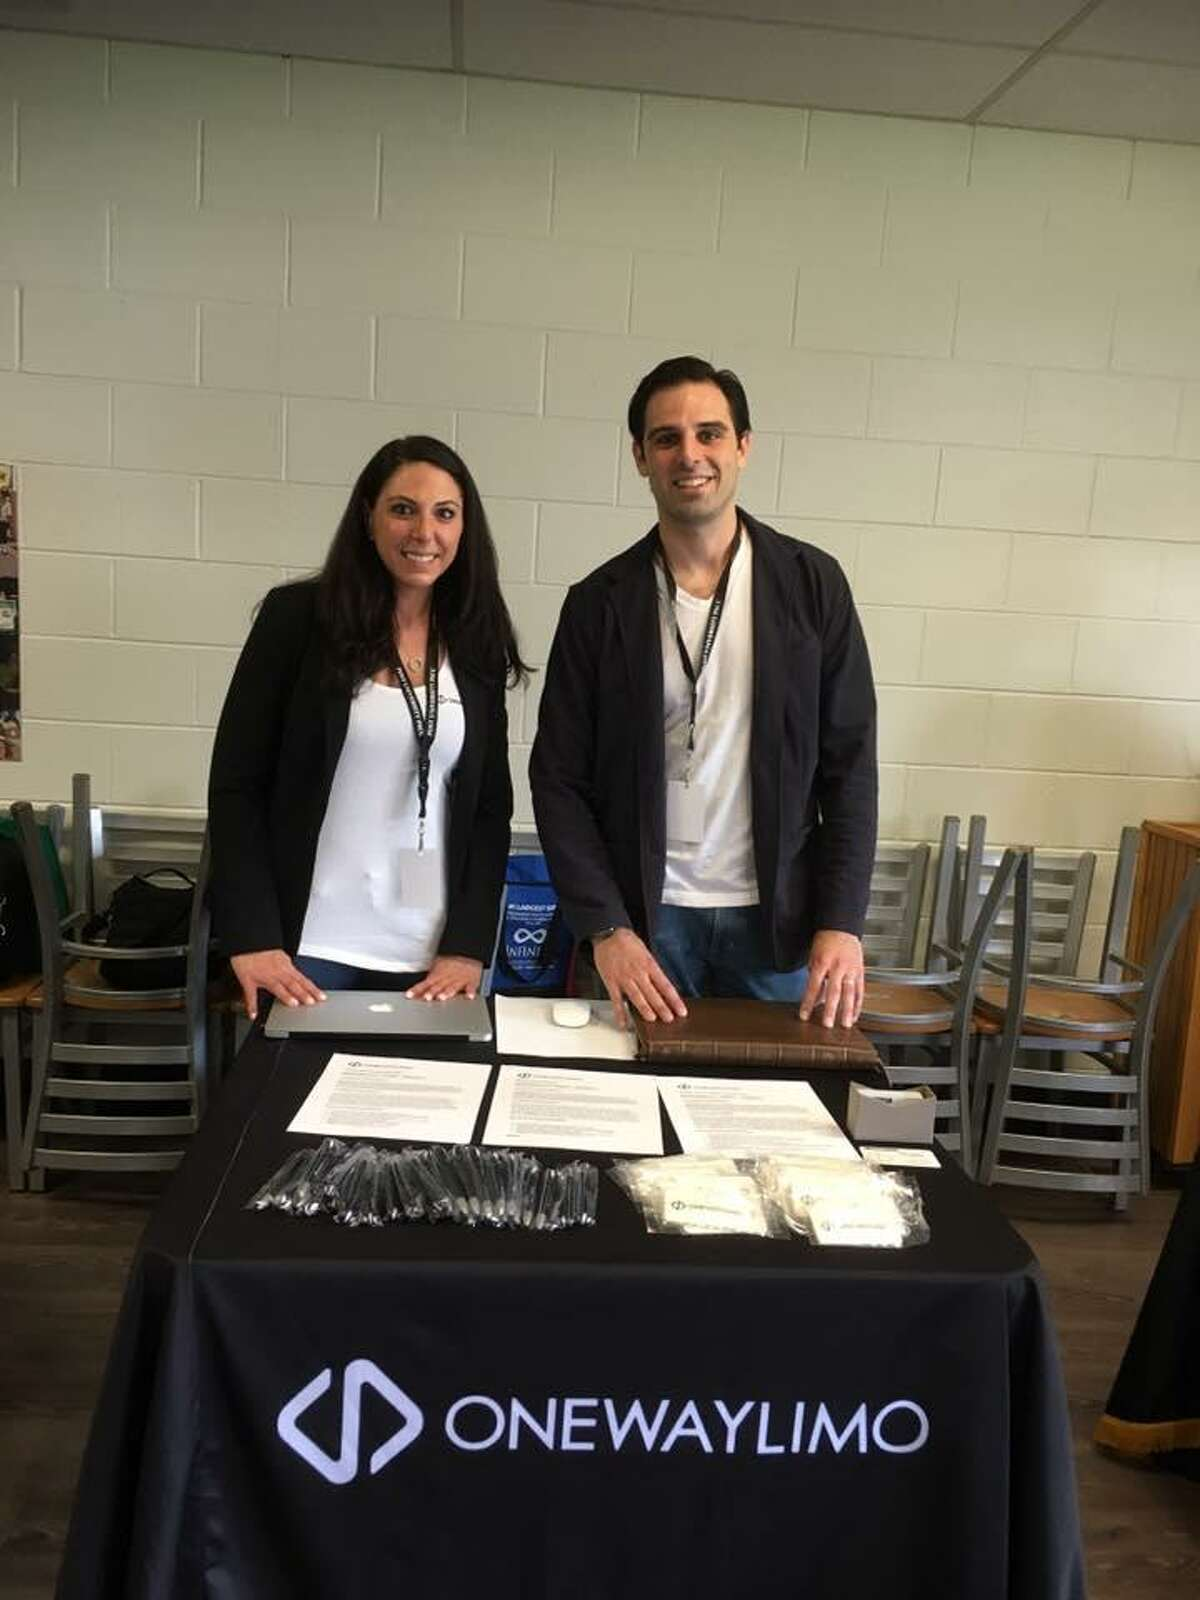 Desiree Tavares, chief operating officer at Shelton-based OneWayLimo, and Will Haire, principal partner and director of marketing, pose behind the company's table at the career fair at Post University.